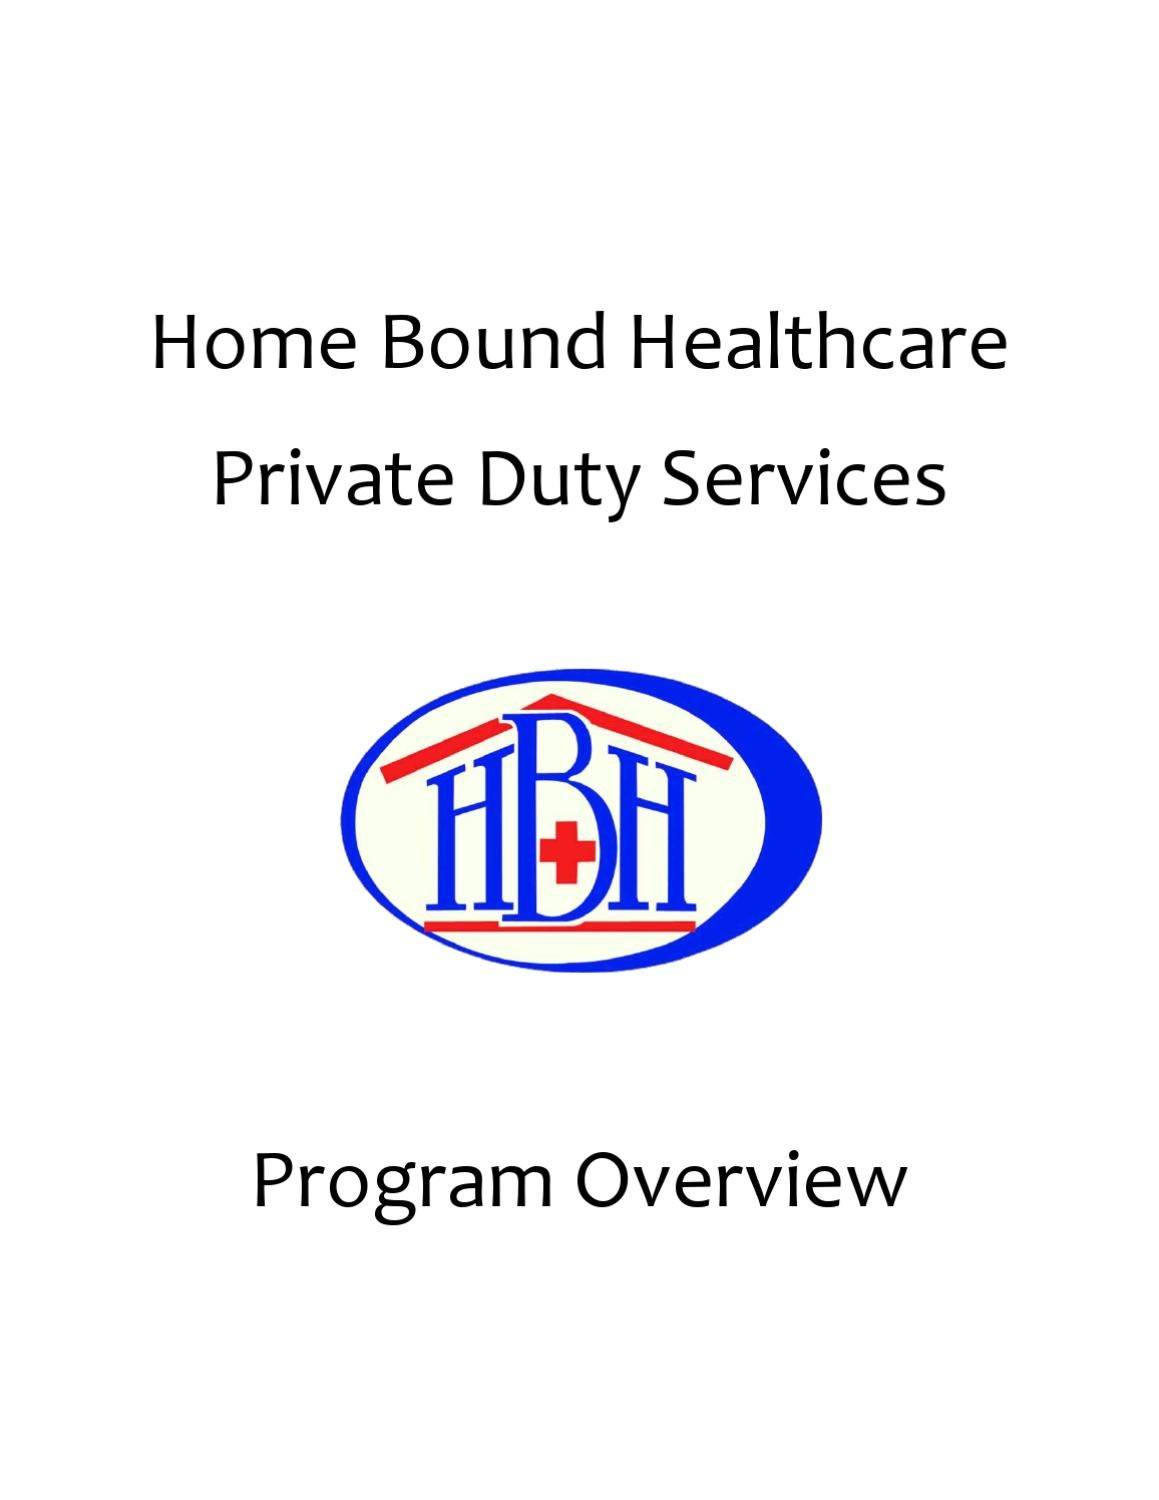 Private Duty Program Overview By Home Bound Healthcare Issuu